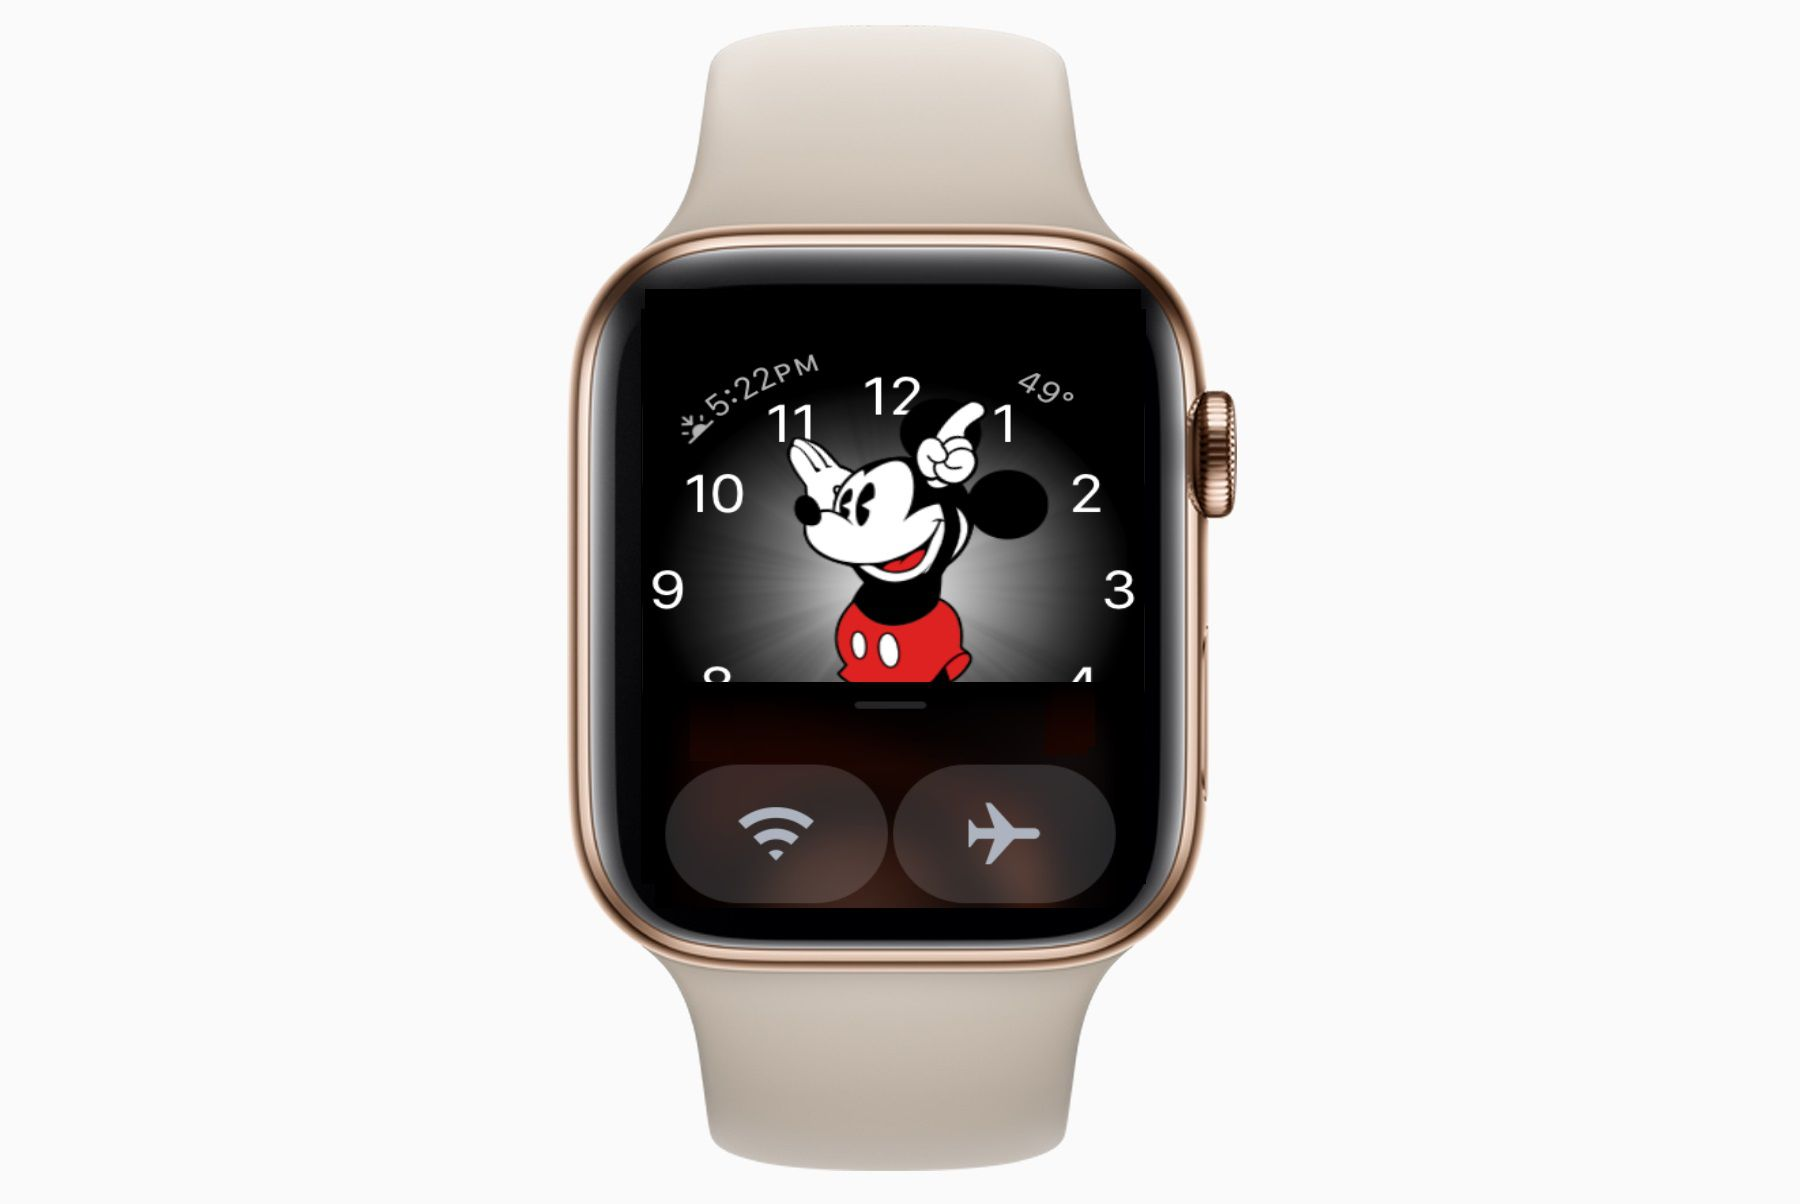 How to Use the Apple Watch Control Center